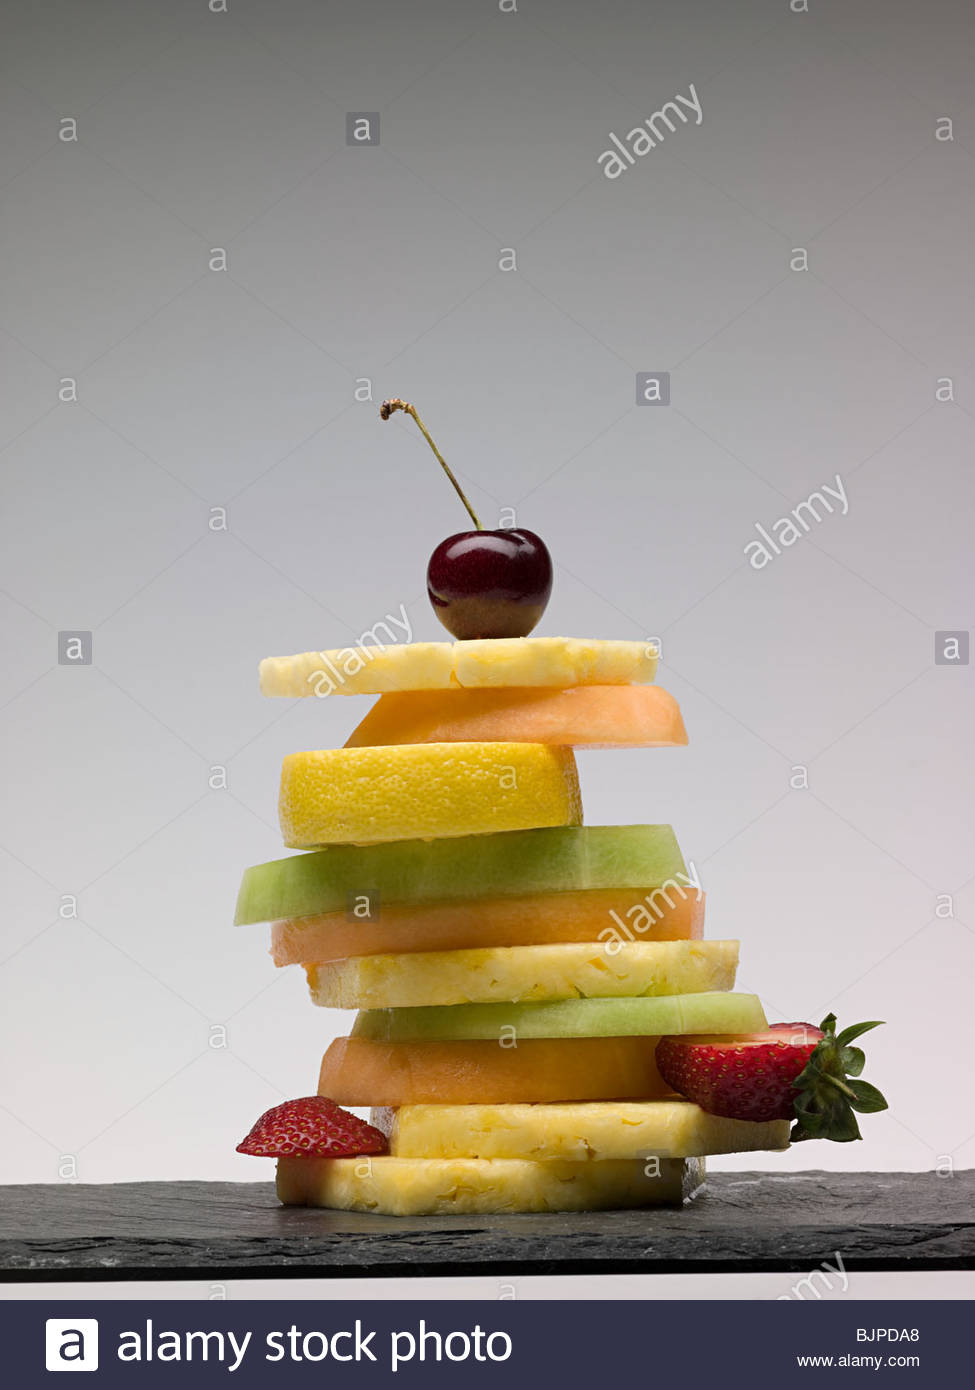 Stack of fruit slices - Stock Image